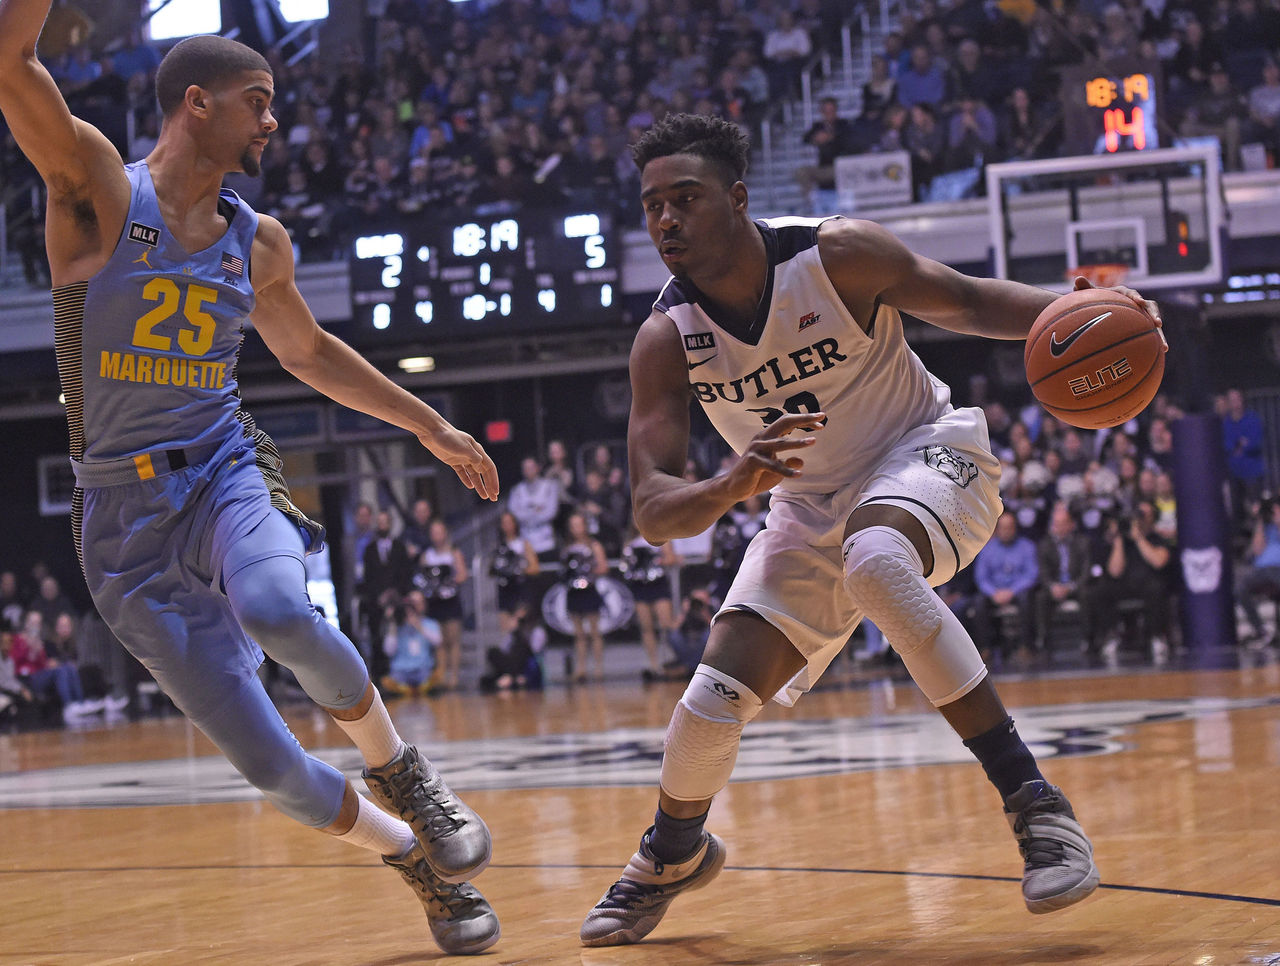 Cropped 2017 01 16t181252z 113450850 nocid rtrmadp 3 ncaa basketball marquette at butler